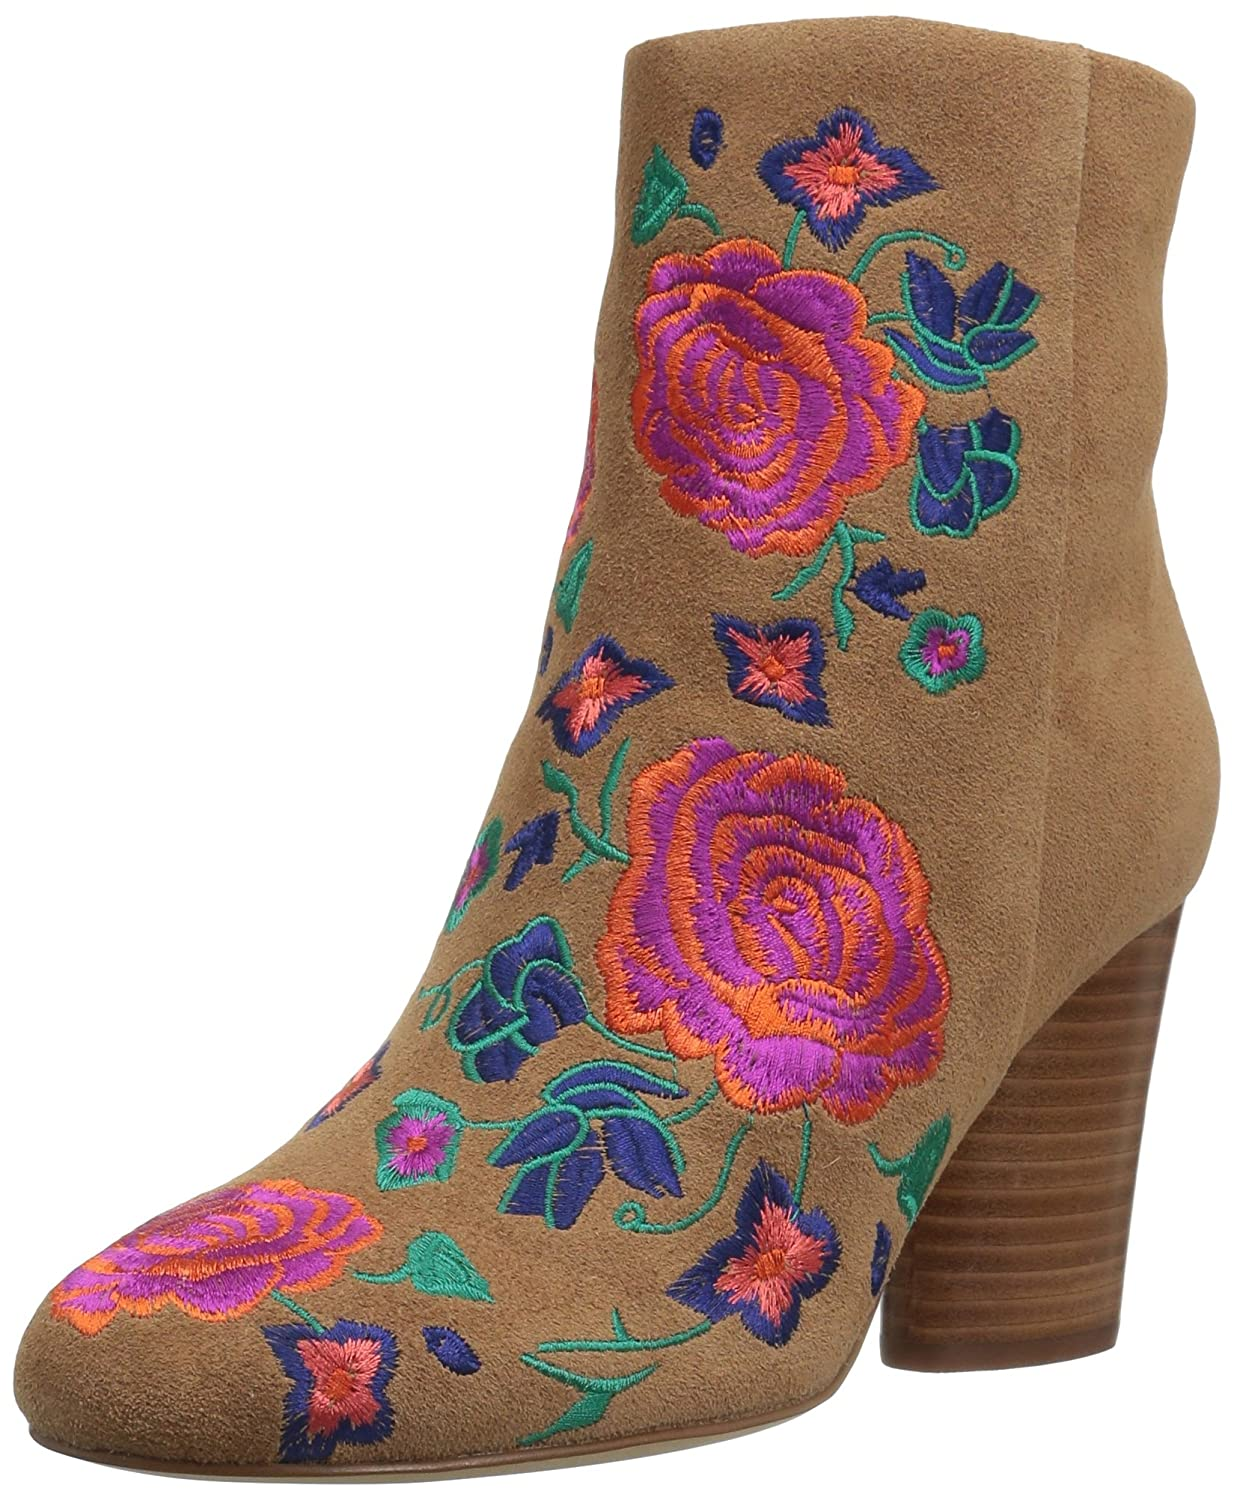 The Fix Women's Nash Floral Embroidery Oval Heel Ankle Bootie B01N4TGMXQ 8.5 B(M) US|Havana Tan